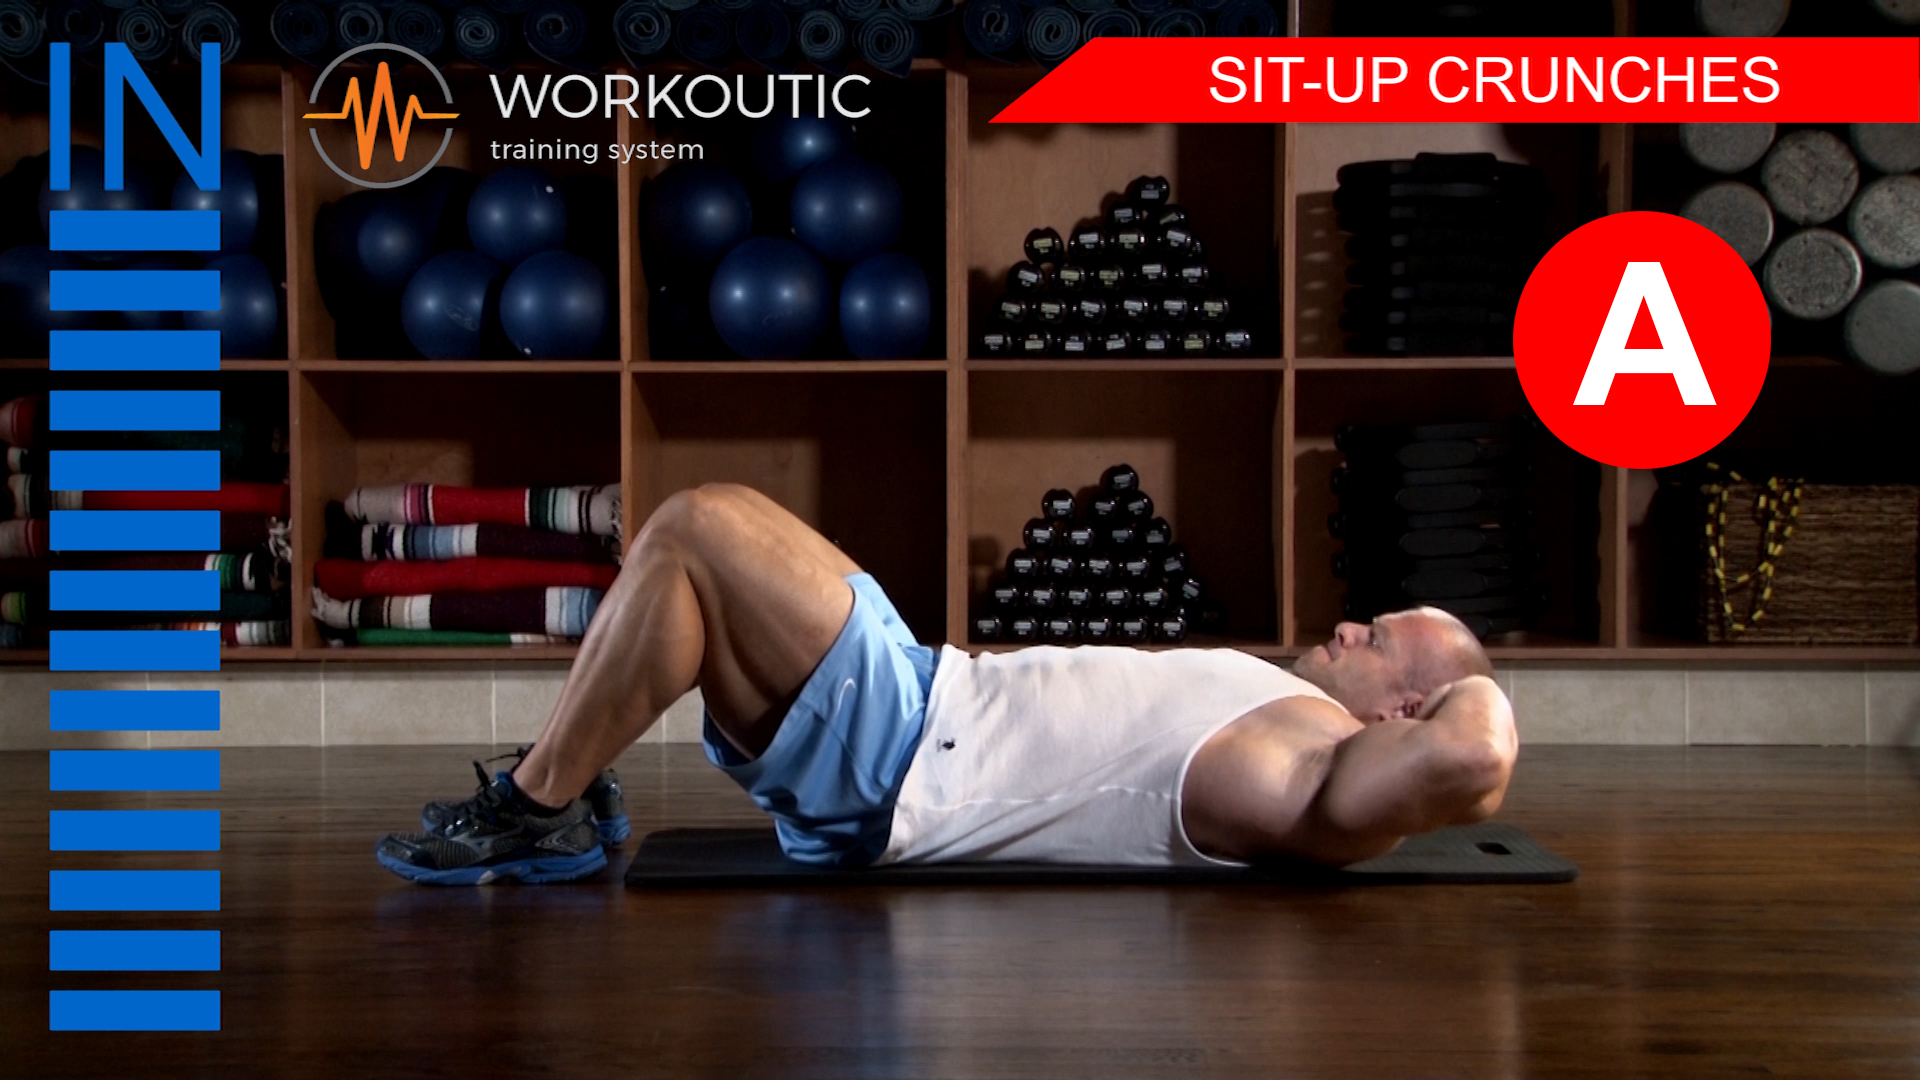 Abs Exercises - Workutic - 6 pack special - Sit-Up Crunches inhale